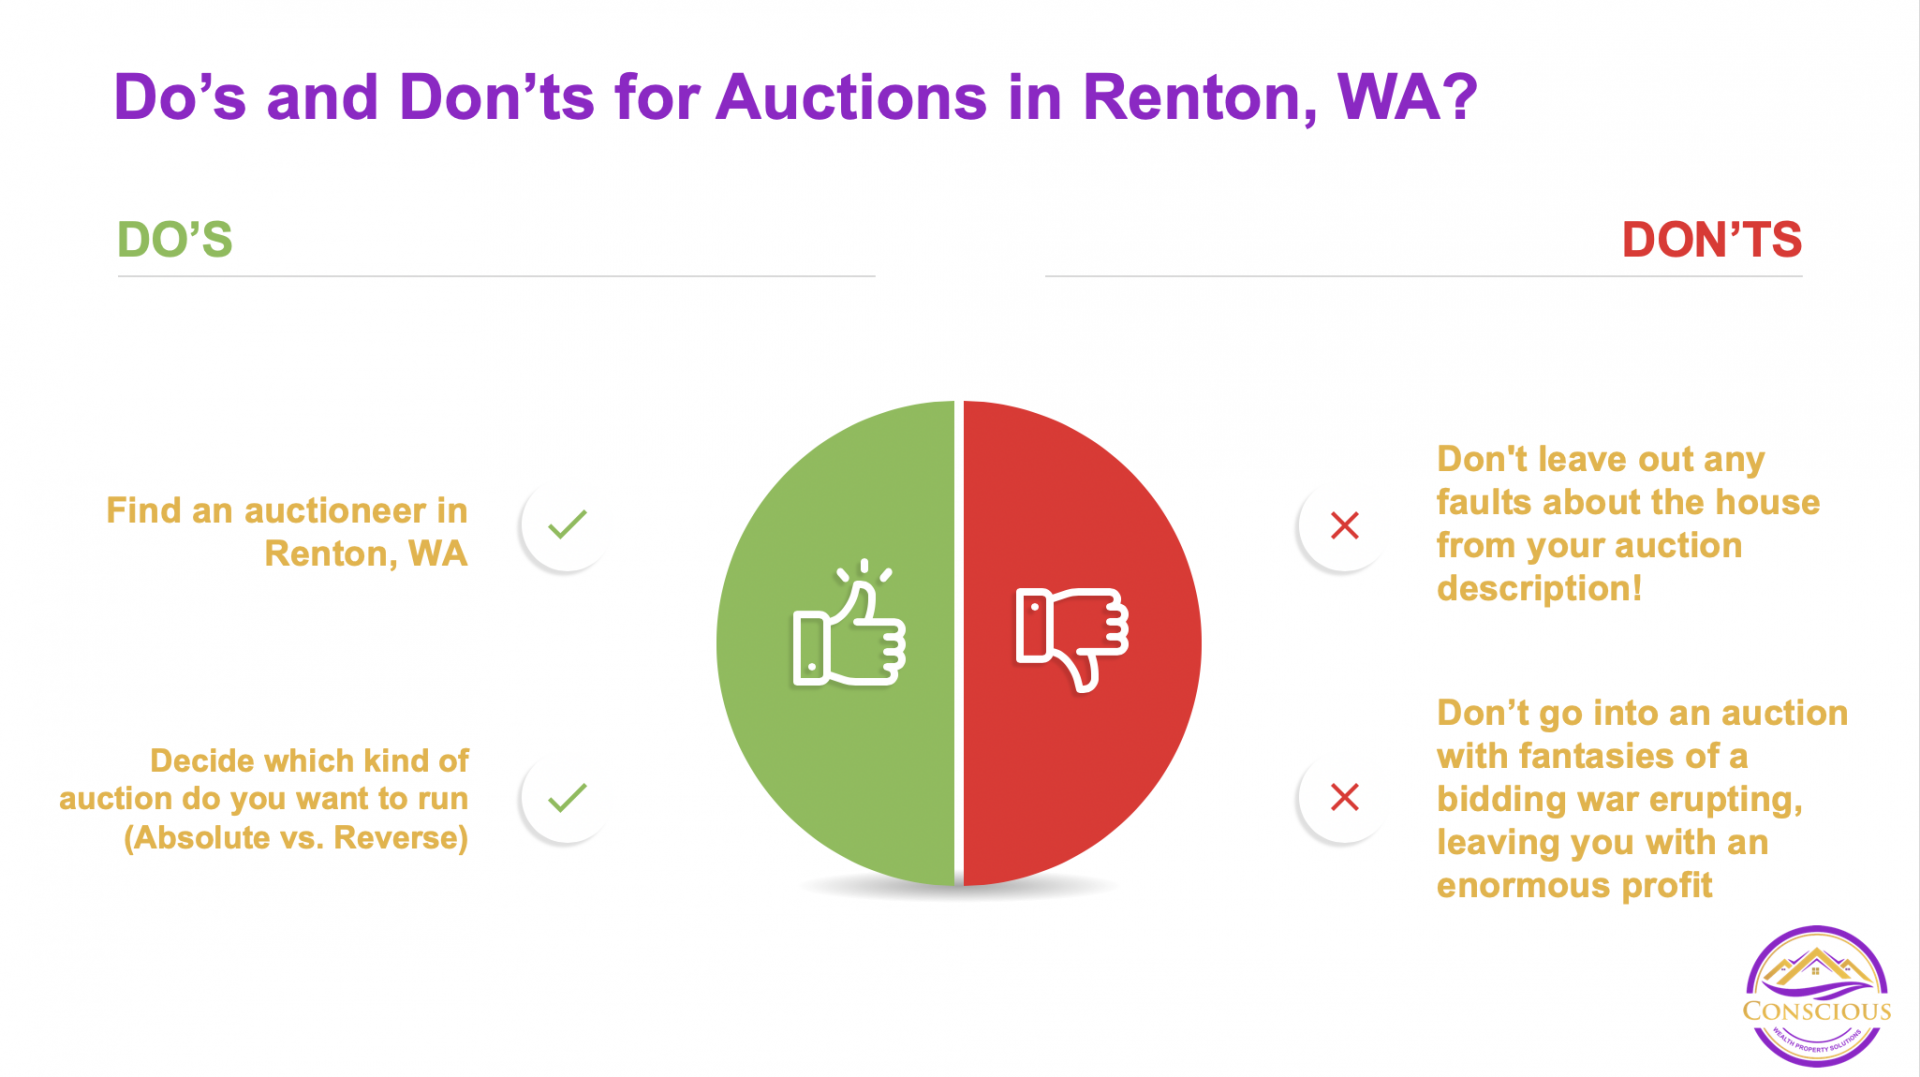 Is auctioning your house a good idea in Renton, WA? Here are the Do's and Don'ts on what to do with an auction!